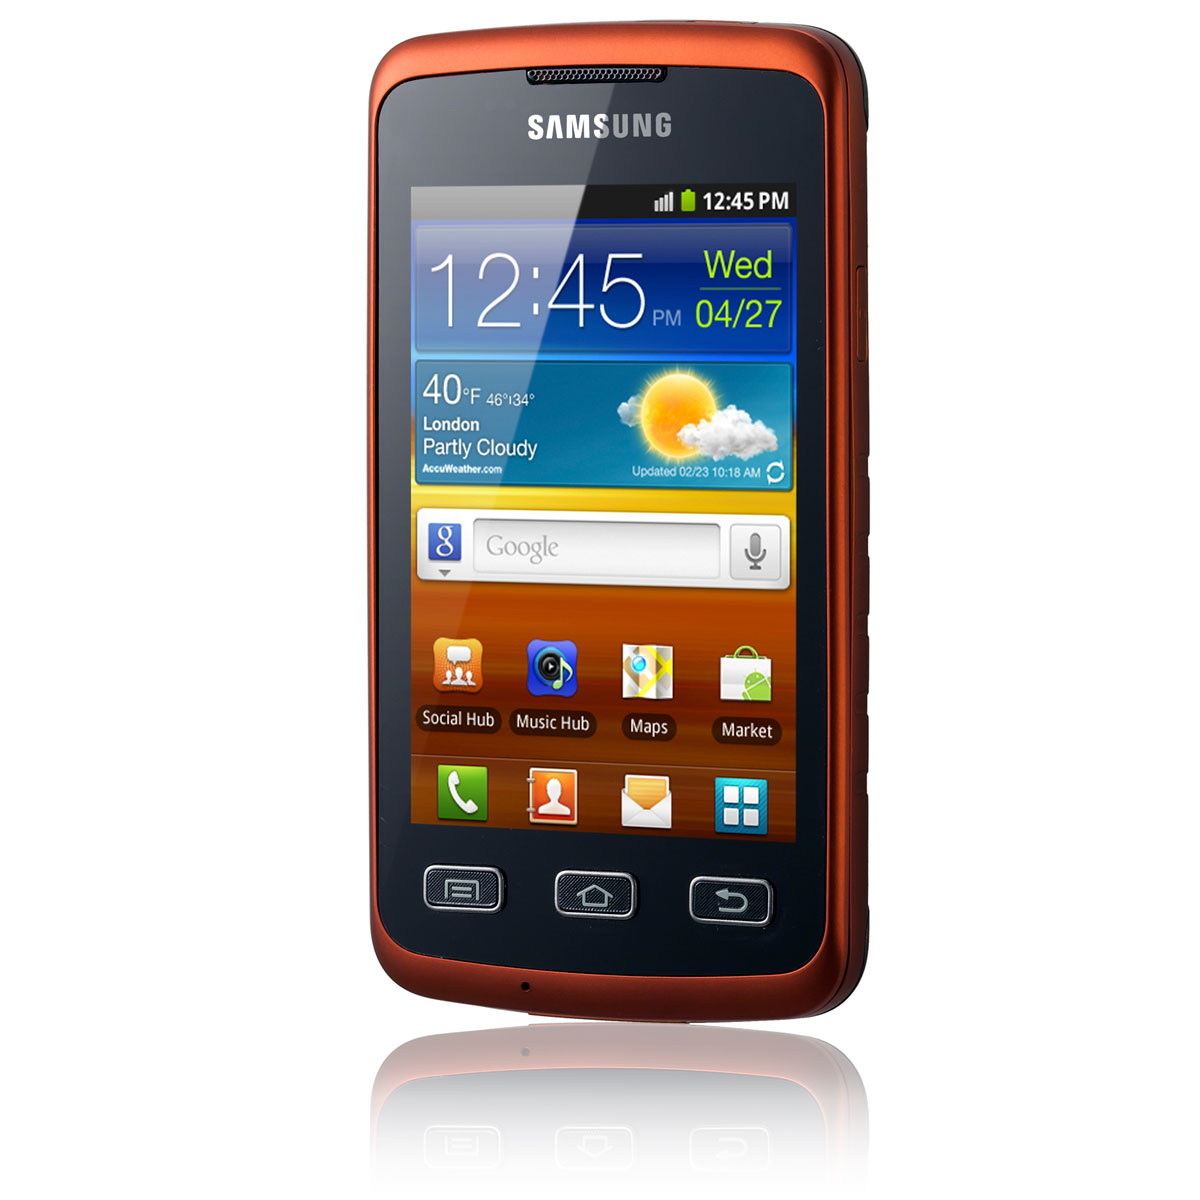 samsung galaxy xcover gt s5690 orange mobile smartphone samsung sur. Black Bedroom Furniture Sets. Home Design Ideas